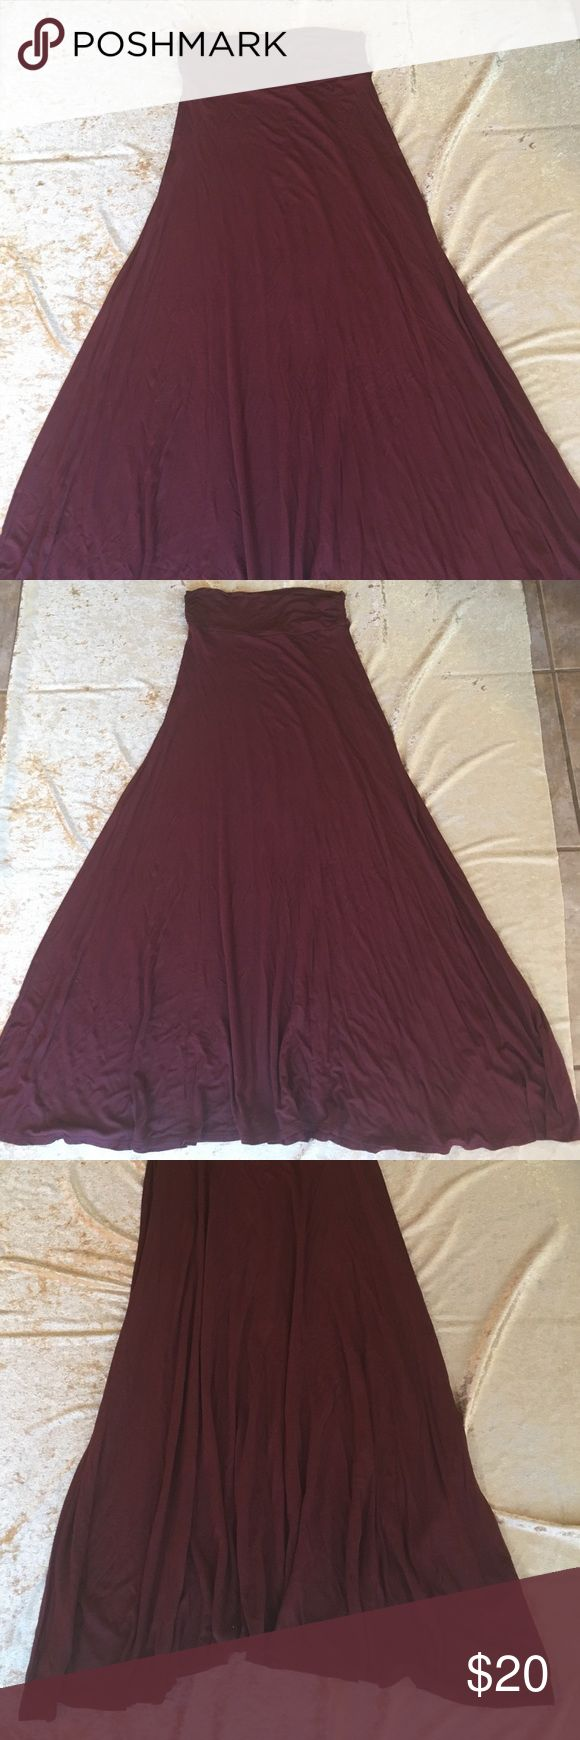 Redwood Brown Maxi Skirt S NWOT Awesome color This is such a hard color to find. It's a brown that is almost burgundy- but not quite. Measurements in pictures. 1st length includes waistband. Please ask any questions before hitting the offer button. Thanks! 💙🌙 Skirts Maxi